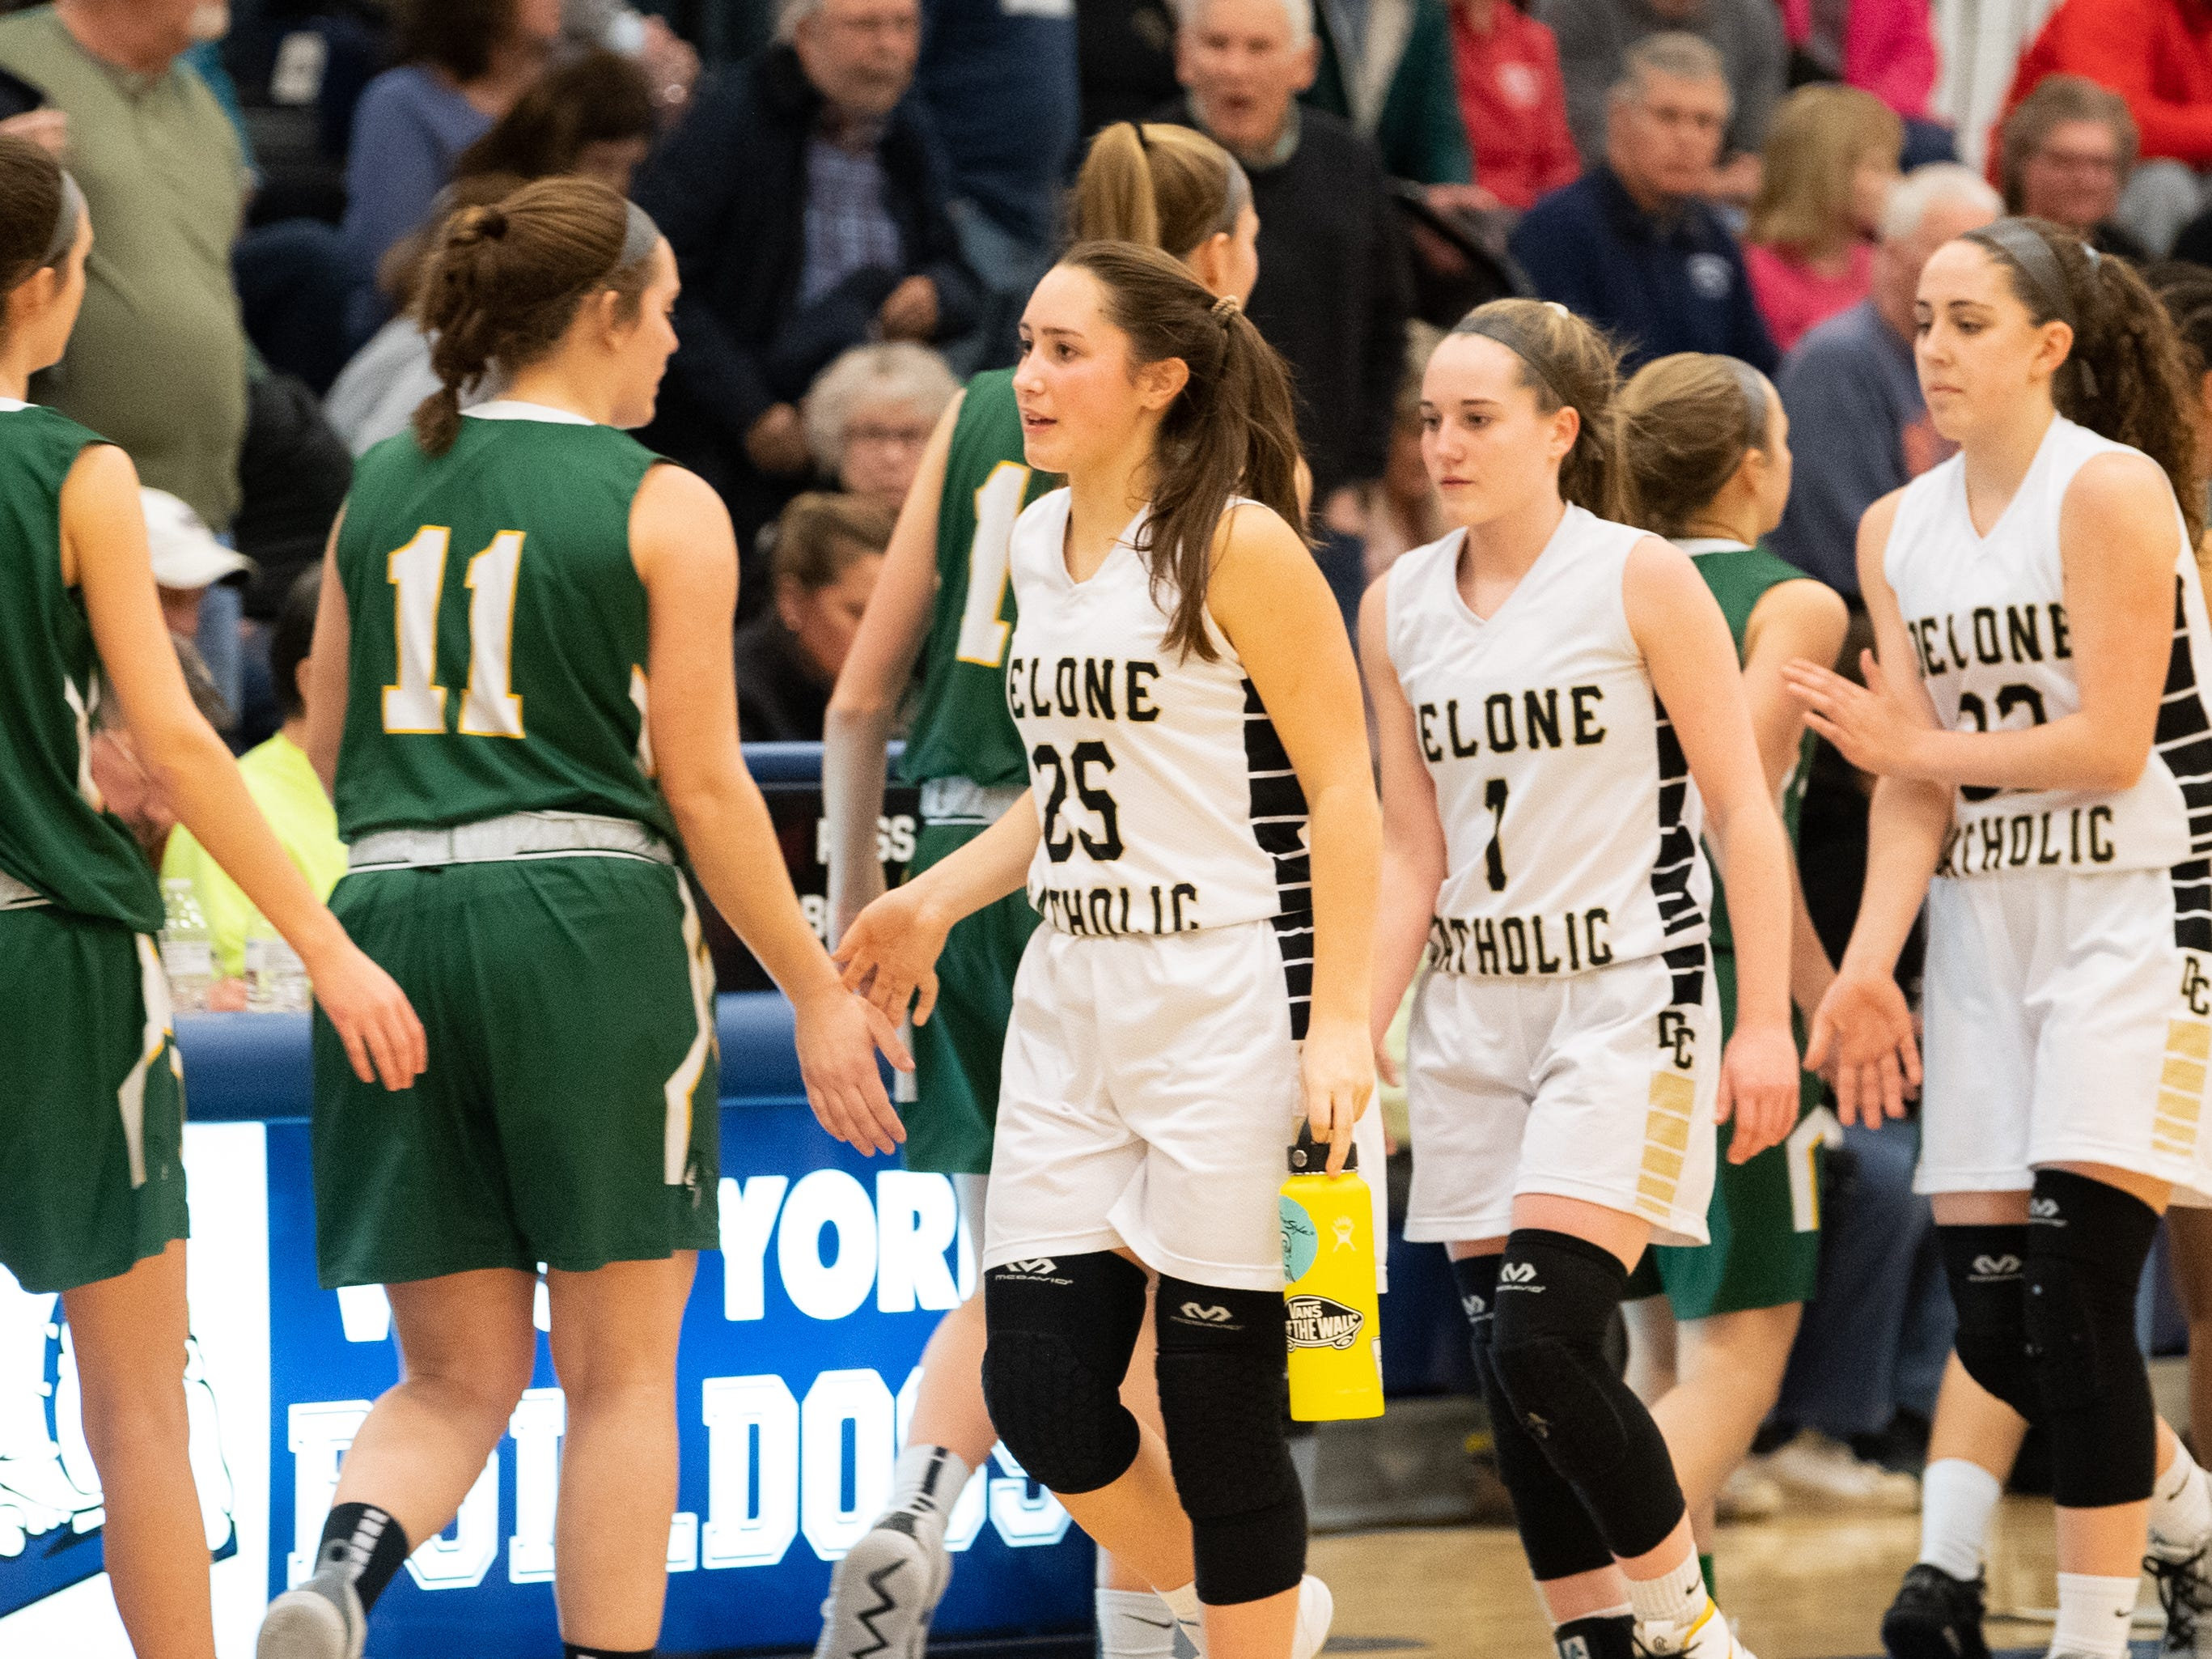 Both teammates shake hands after the PIAA first round girls' basketball game between Delone Catholic and Lewisburg Area Friday, March 8, 2019 at West York Area High School. The Squires defeated the Green Dragons 77 to 36.